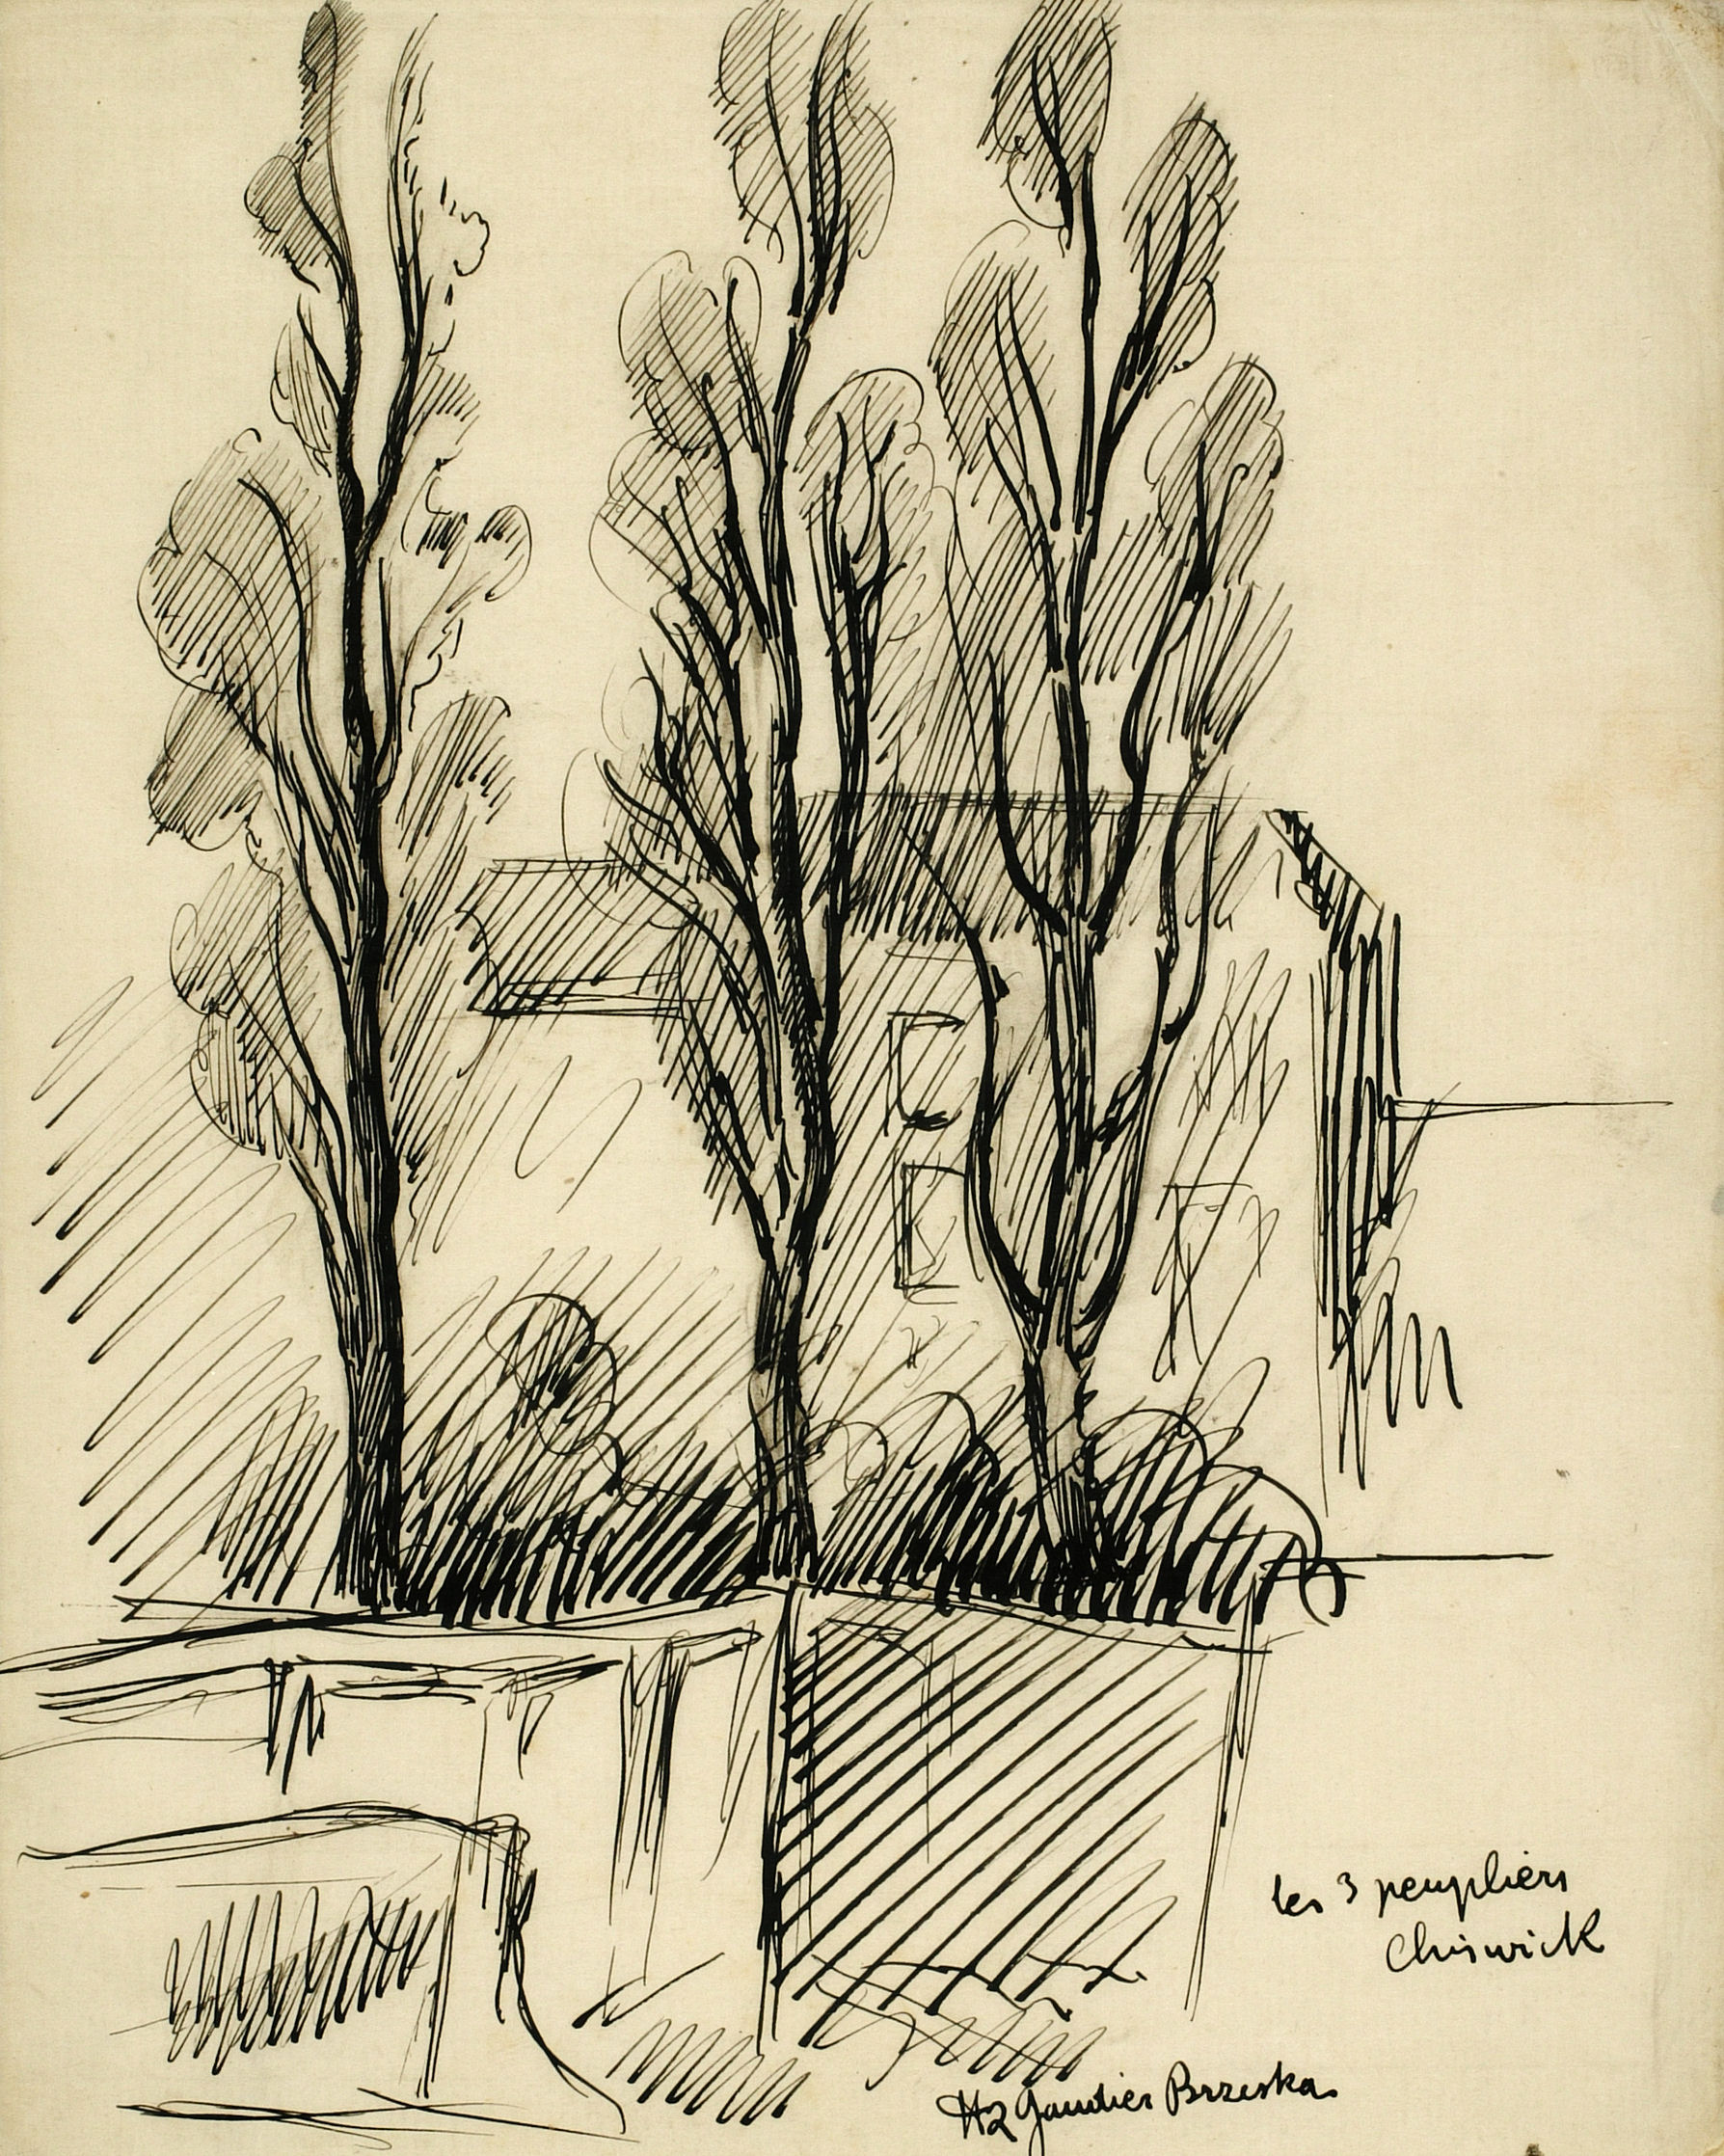 Drawing of 'Les trois peupliers, Chiswick'